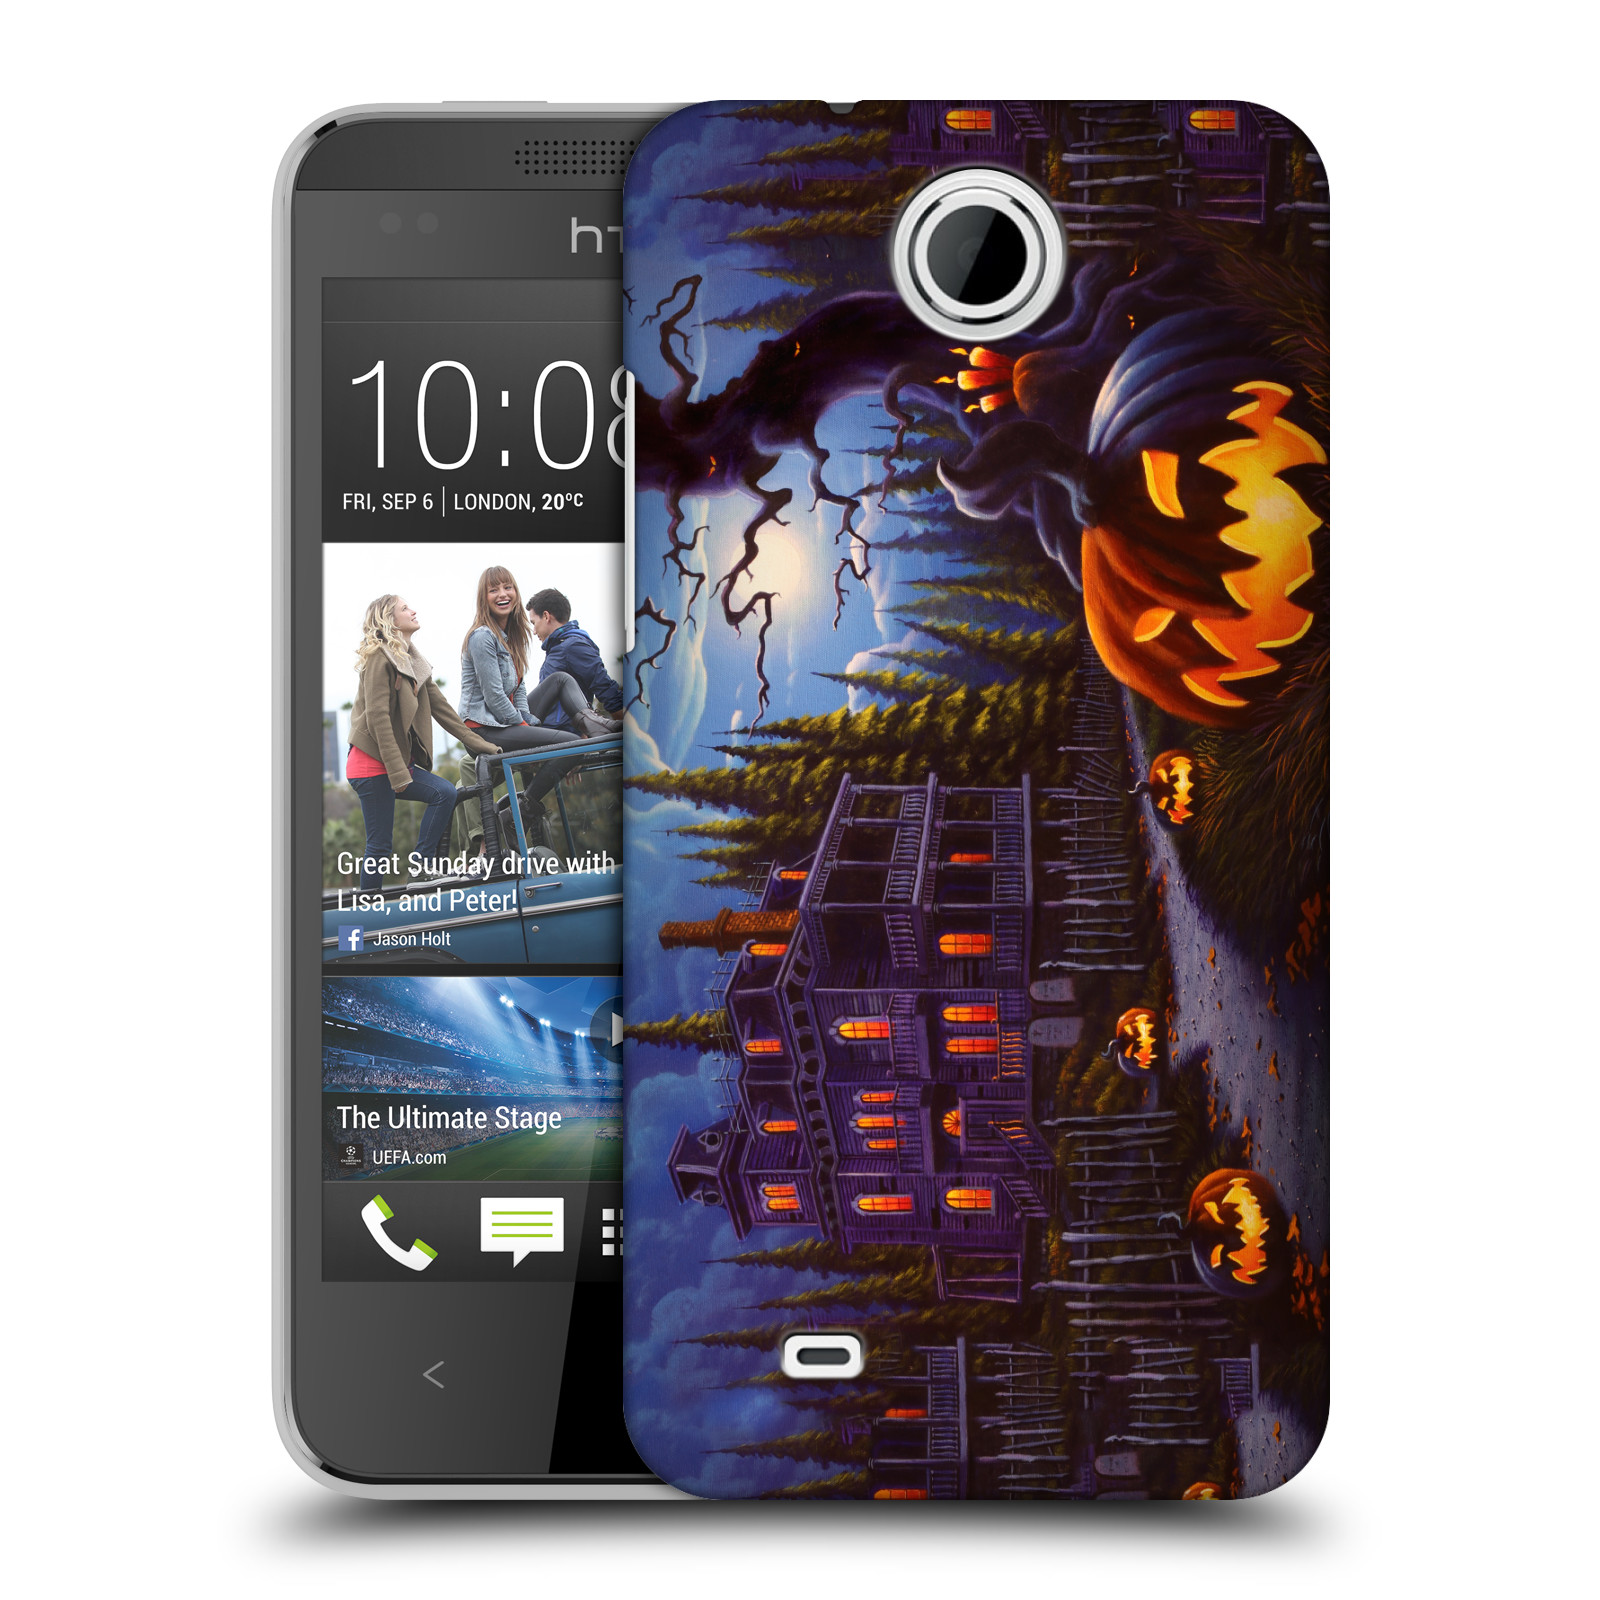 OFFICIAL-GENO-PEOPLES-ART-HALLOWEEN-HARD-BACK-CASE-FOR-HTC-PHONES-3